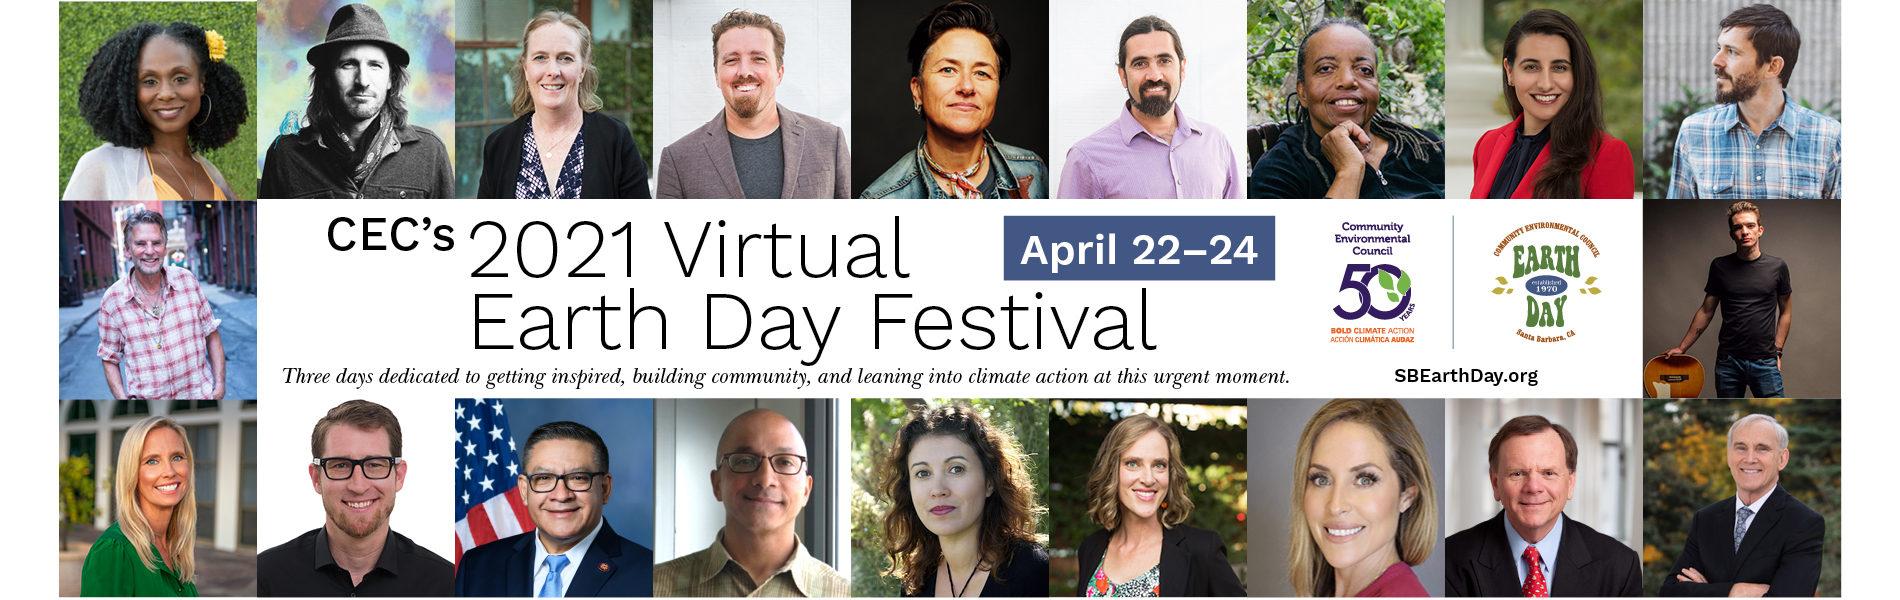 earth day festival banner with pictures of speakers and performers